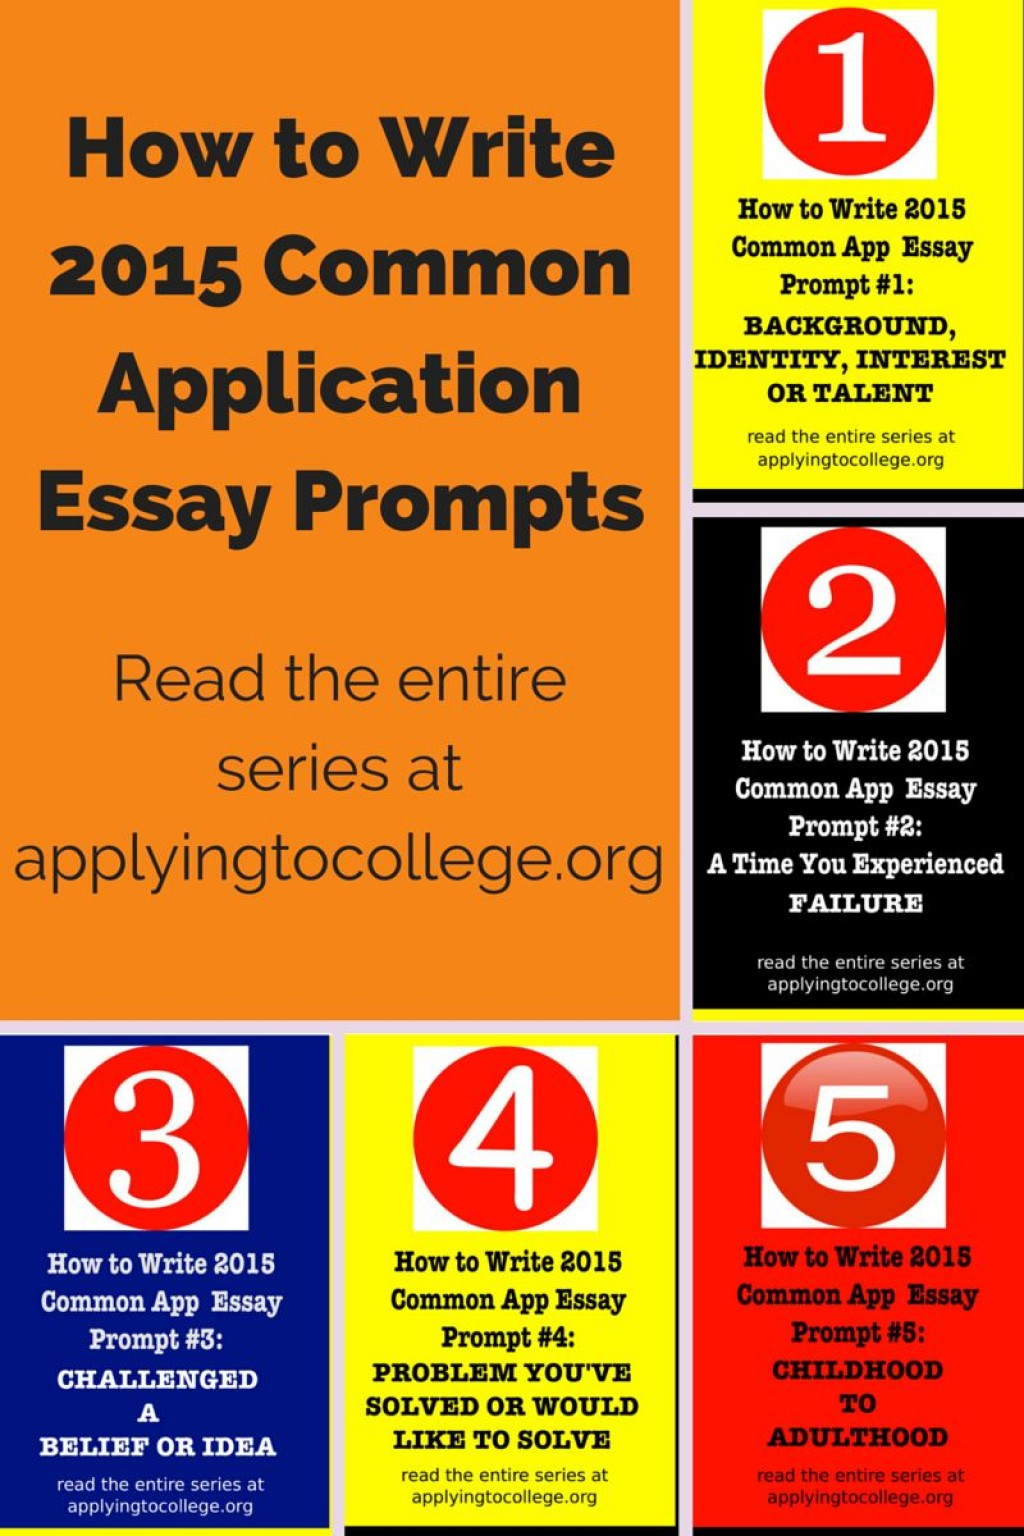 009 Prompts For College Essays Essay Unusual 2015 Large